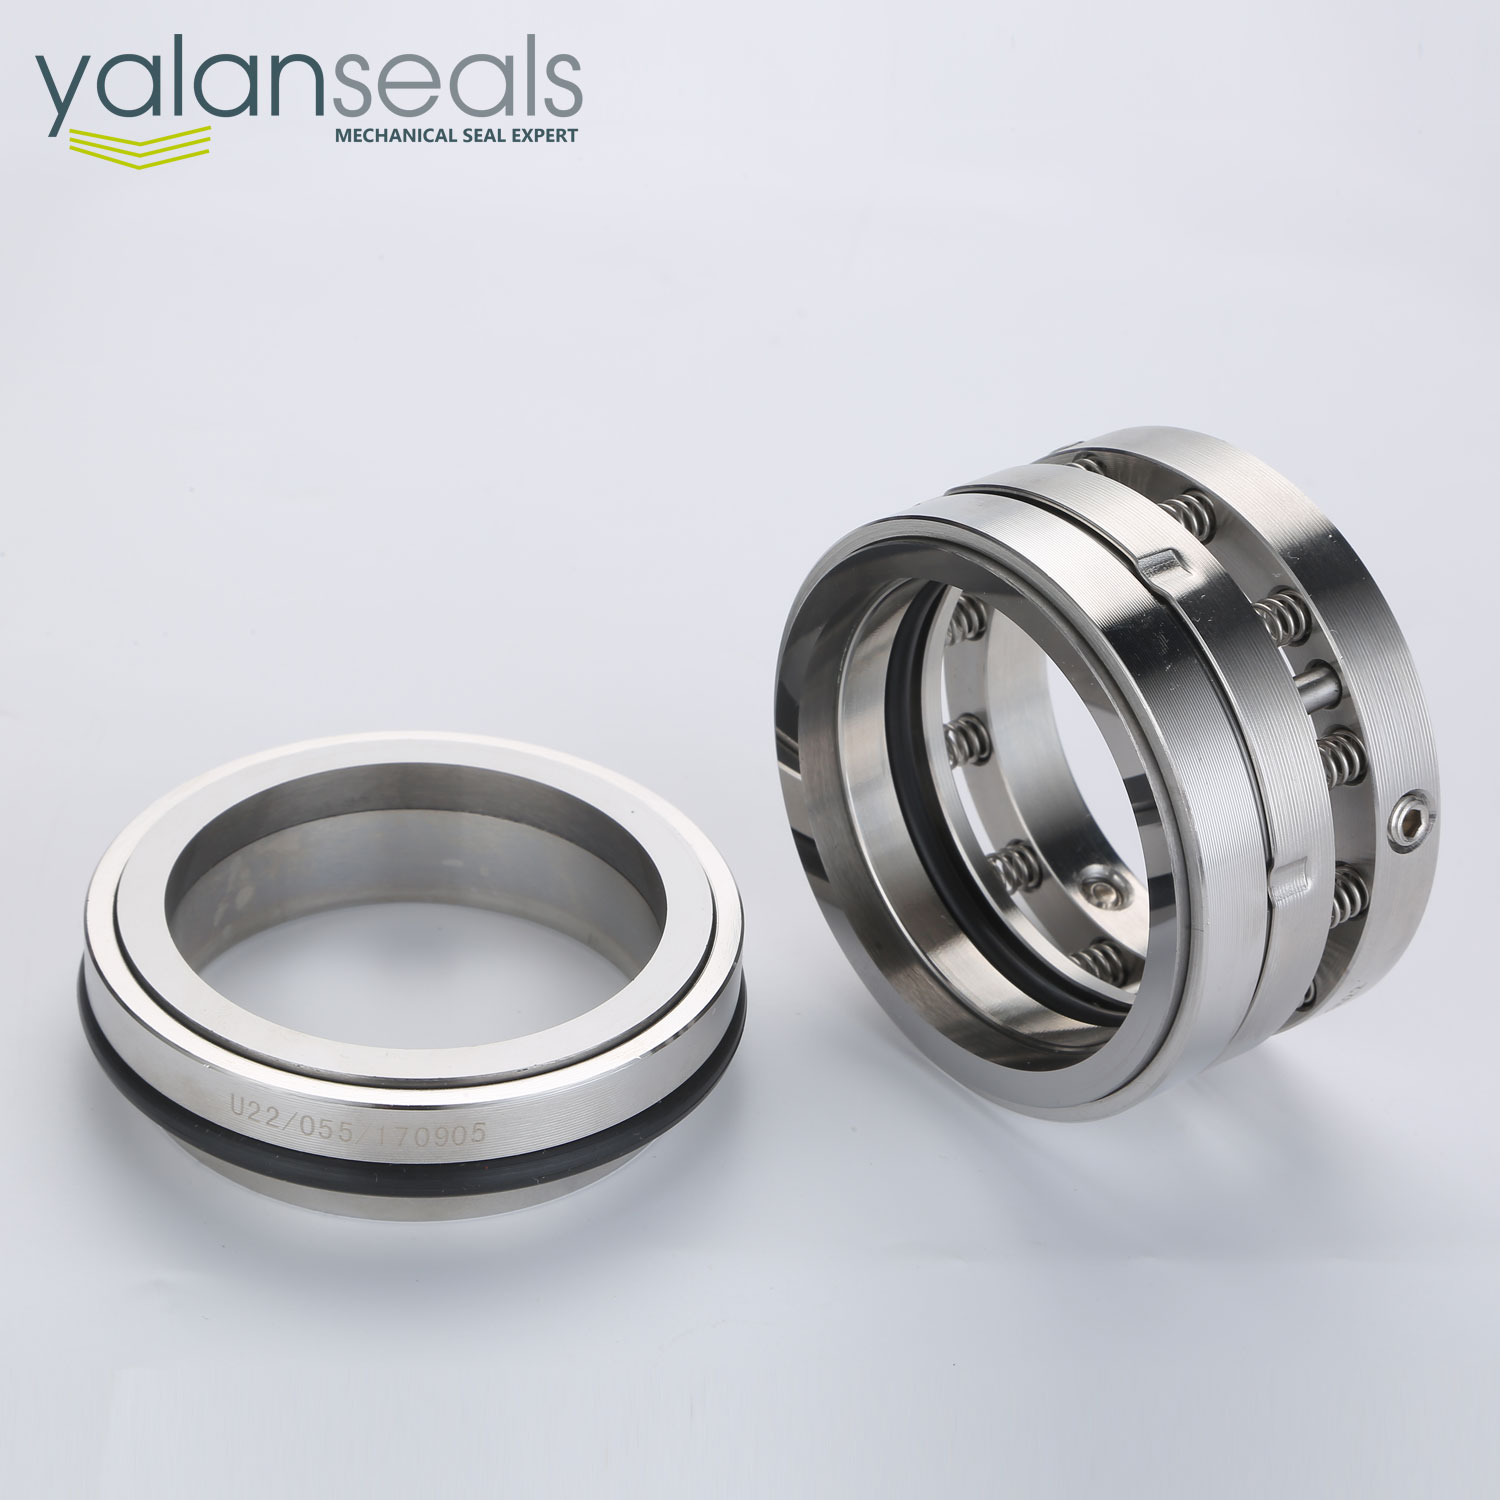 C20 Multi Spring Unbalanced Mechanical Seal